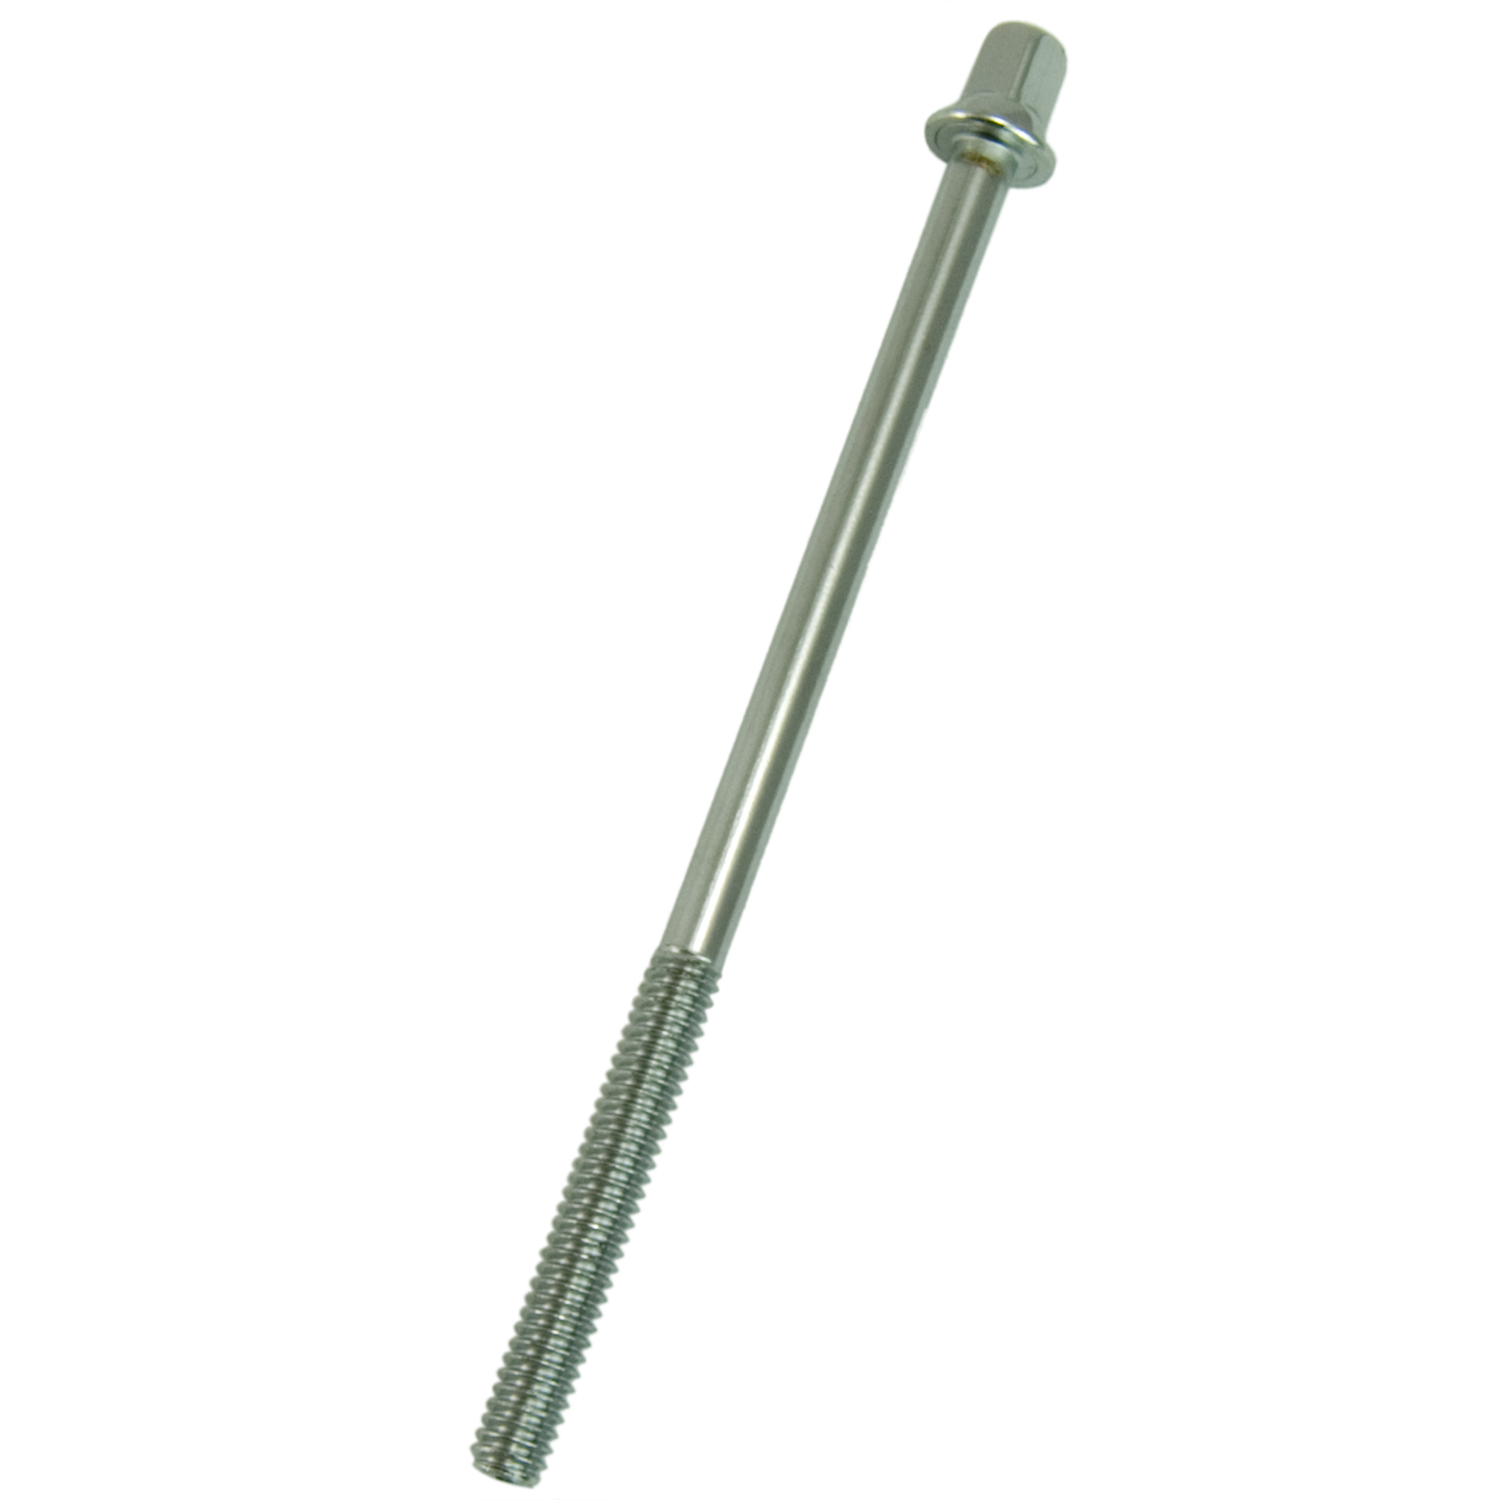 Bass Drum Tension Rod